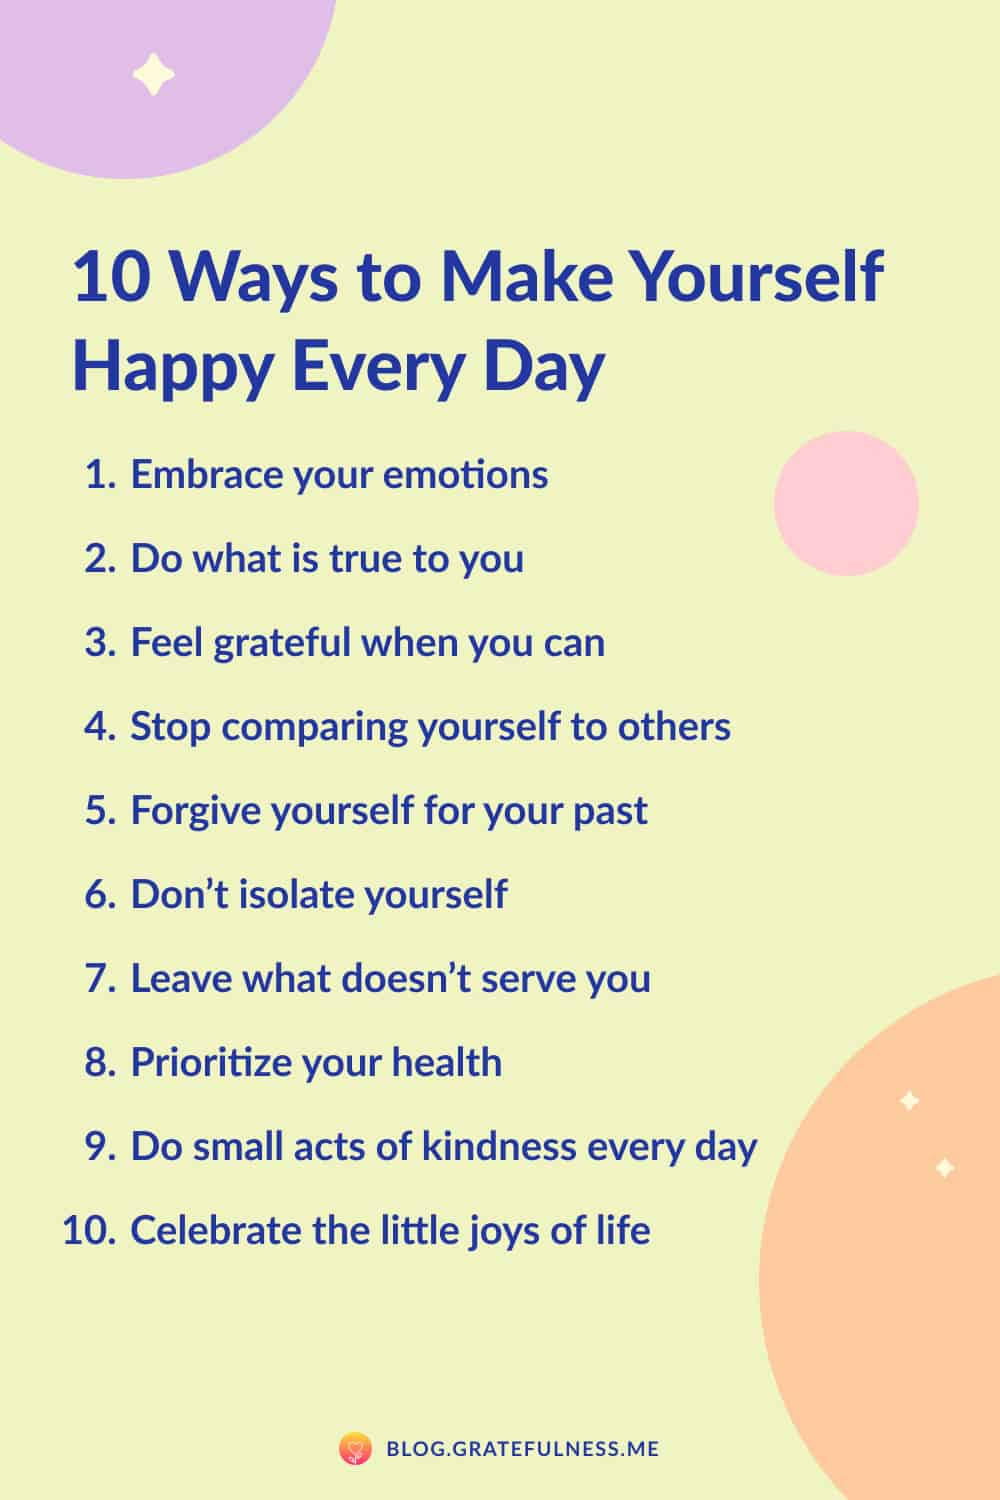 Image with list of 10 ways to make yourself happy